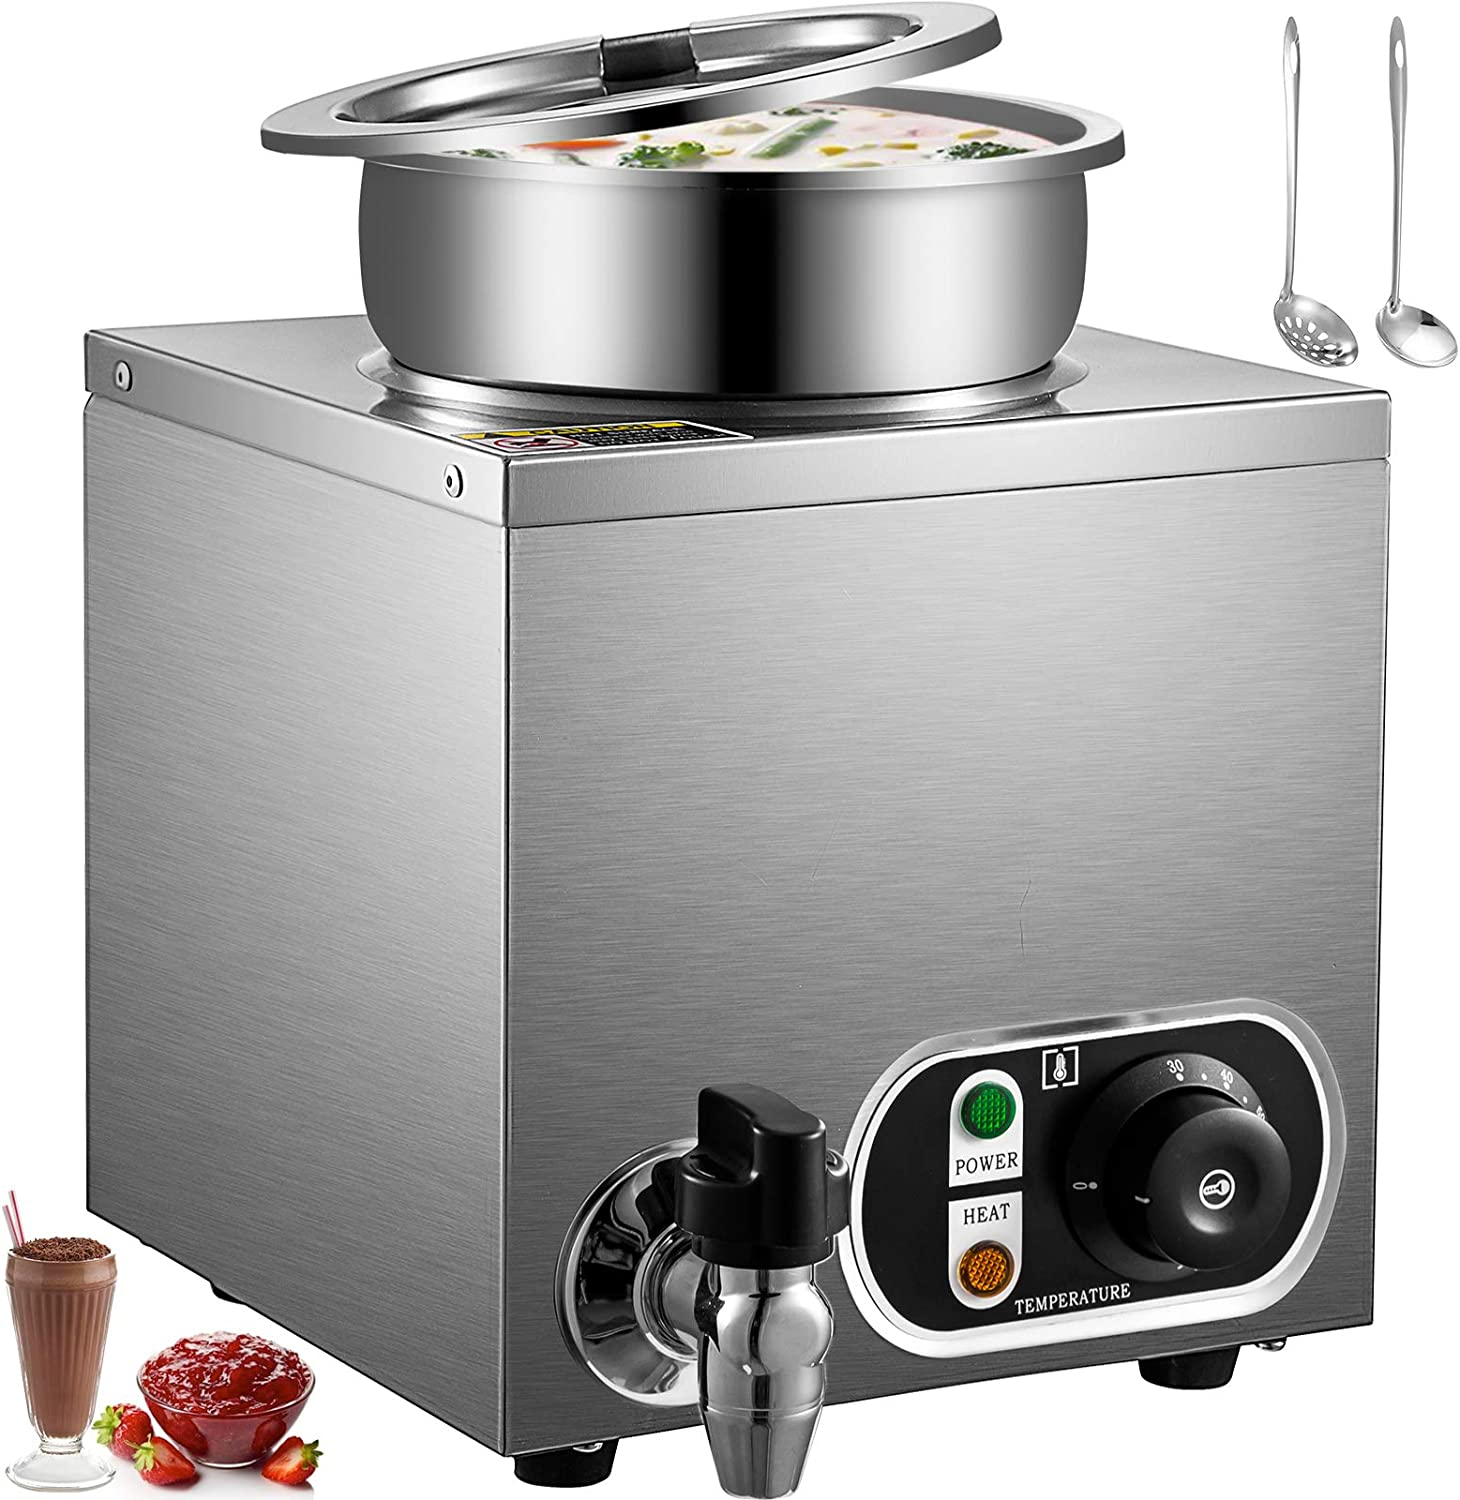 VEVOR 110V Commercial Food Warmer 4.2 Qt Capacity, 300W Electric Soup Warmer Adjustable Temp.32-185?, Stainless Steel Countertop Soup Pot with Tap, Bain Marie Food Warmer for Cheese/Hot Dog/Rice